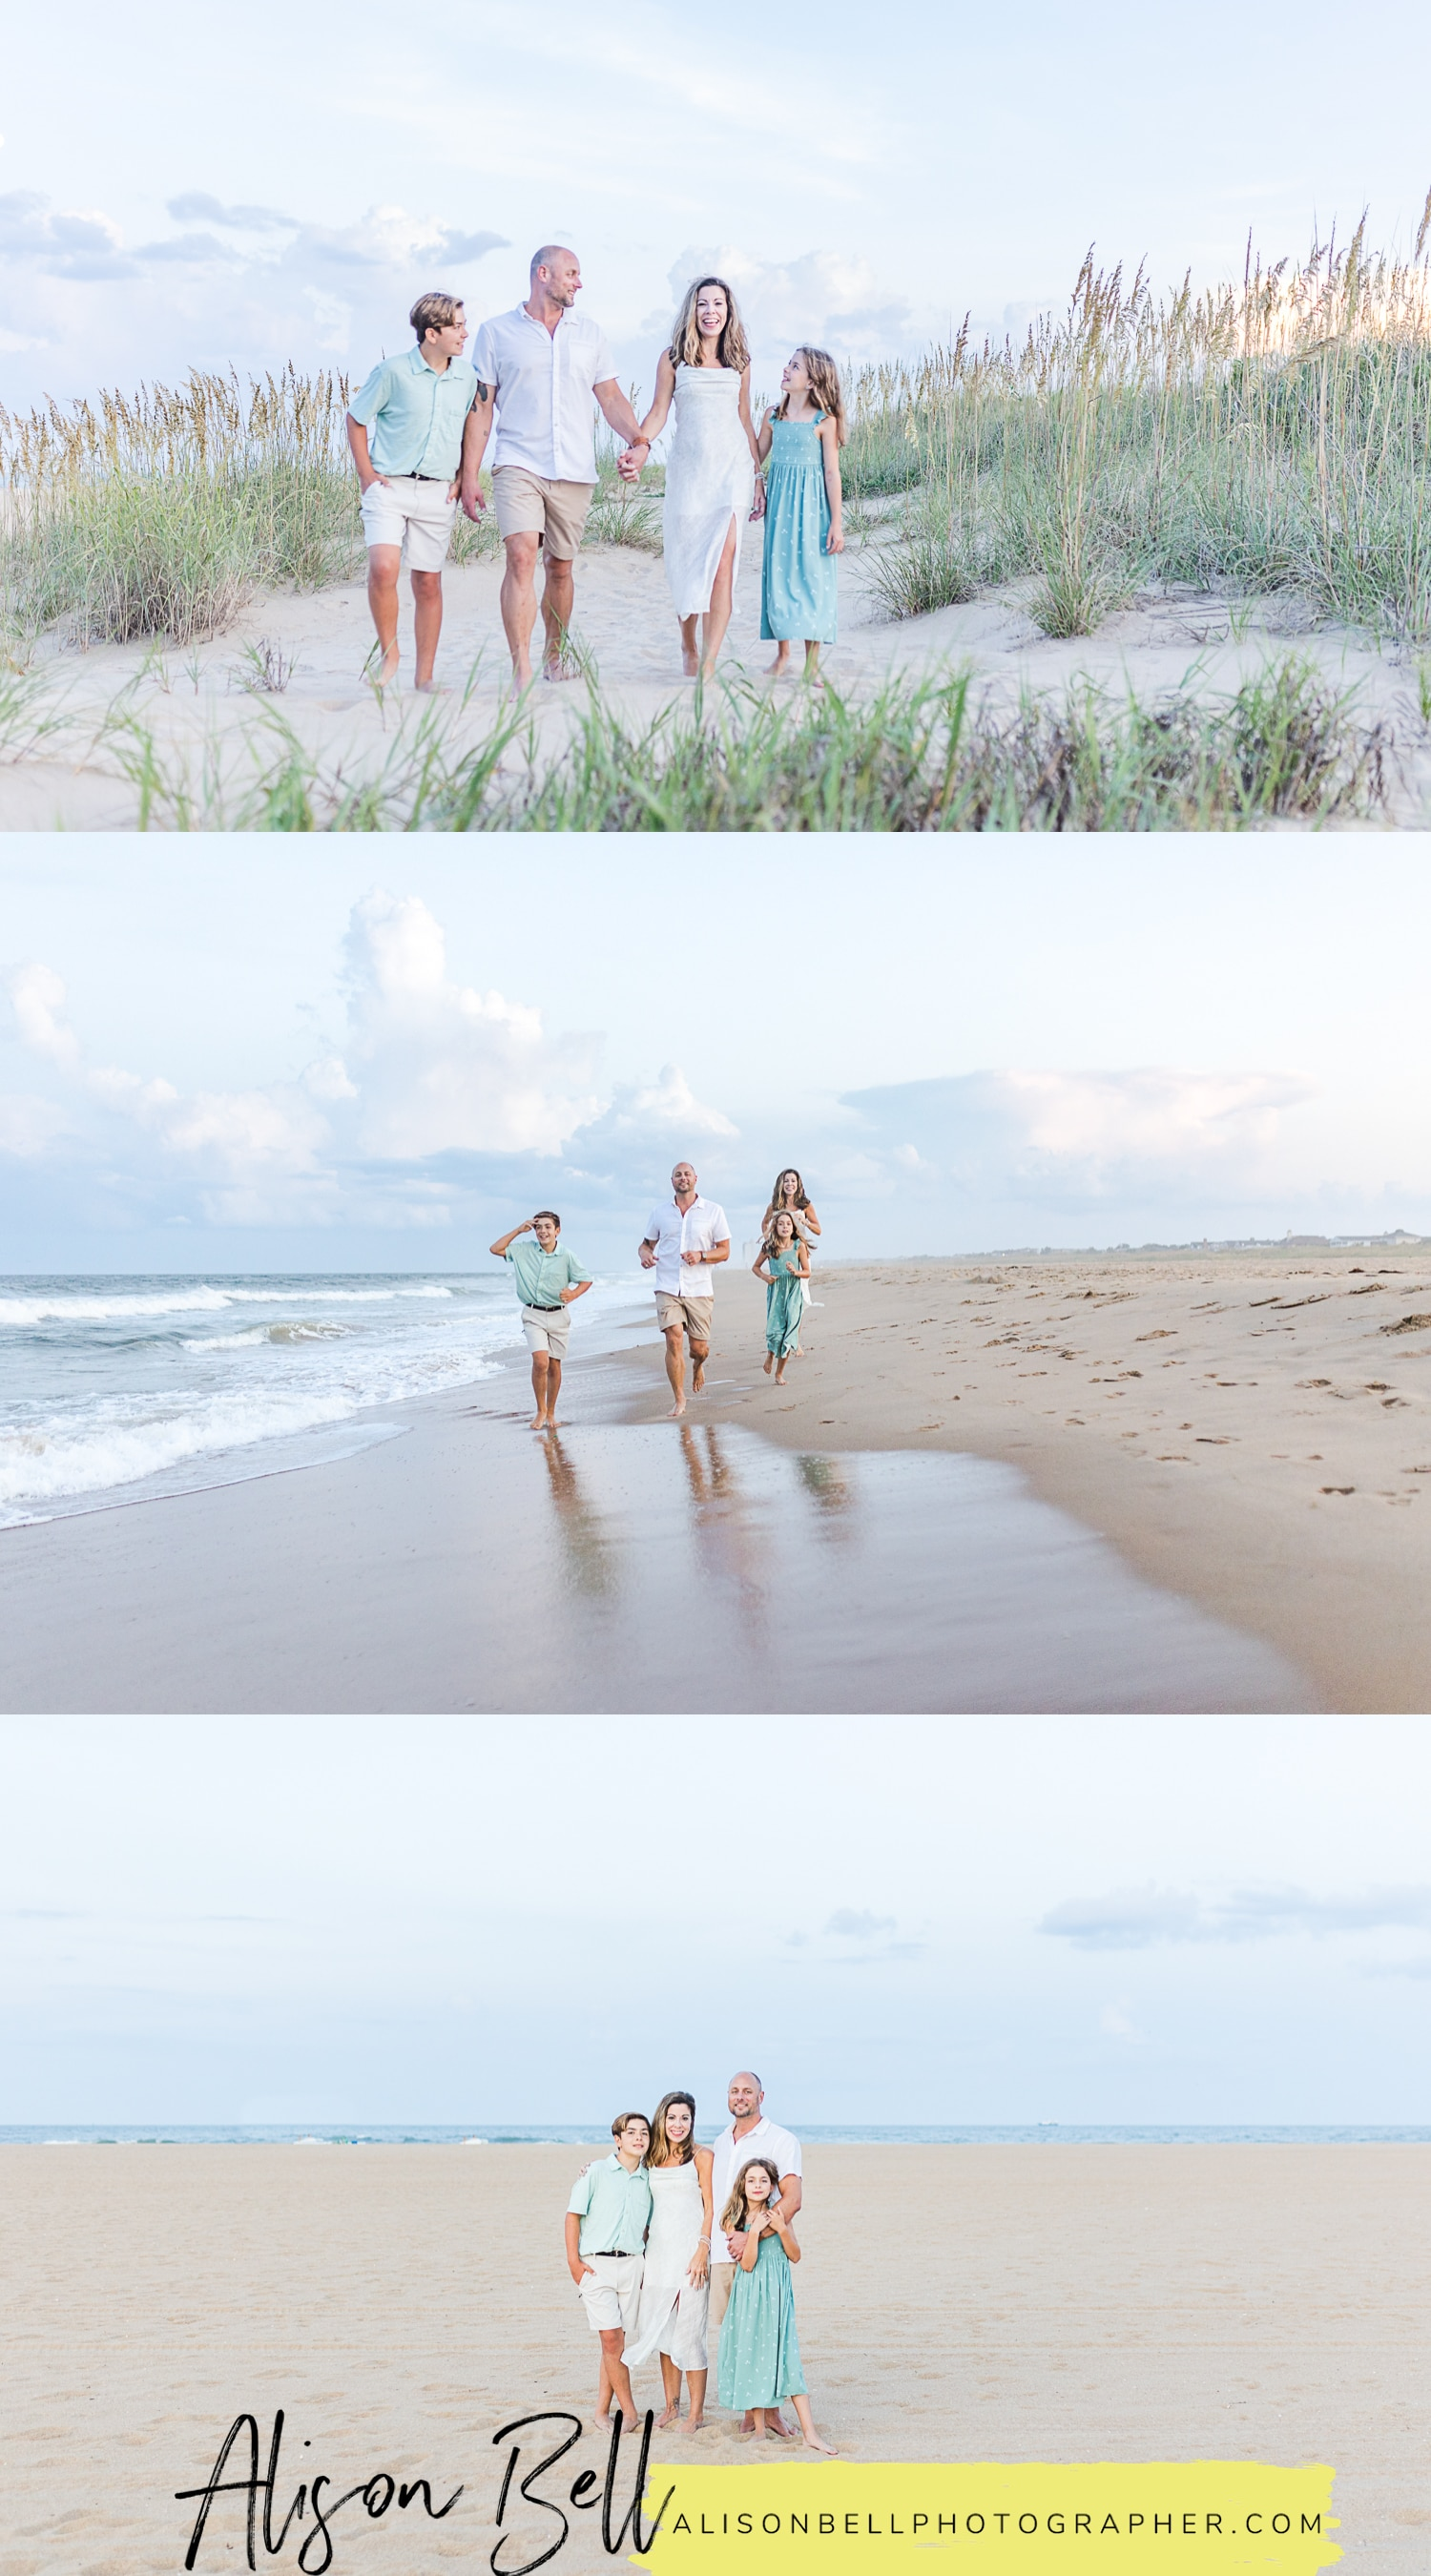 North end virginia beach family photo sessions at 81st by alison bell, photographer